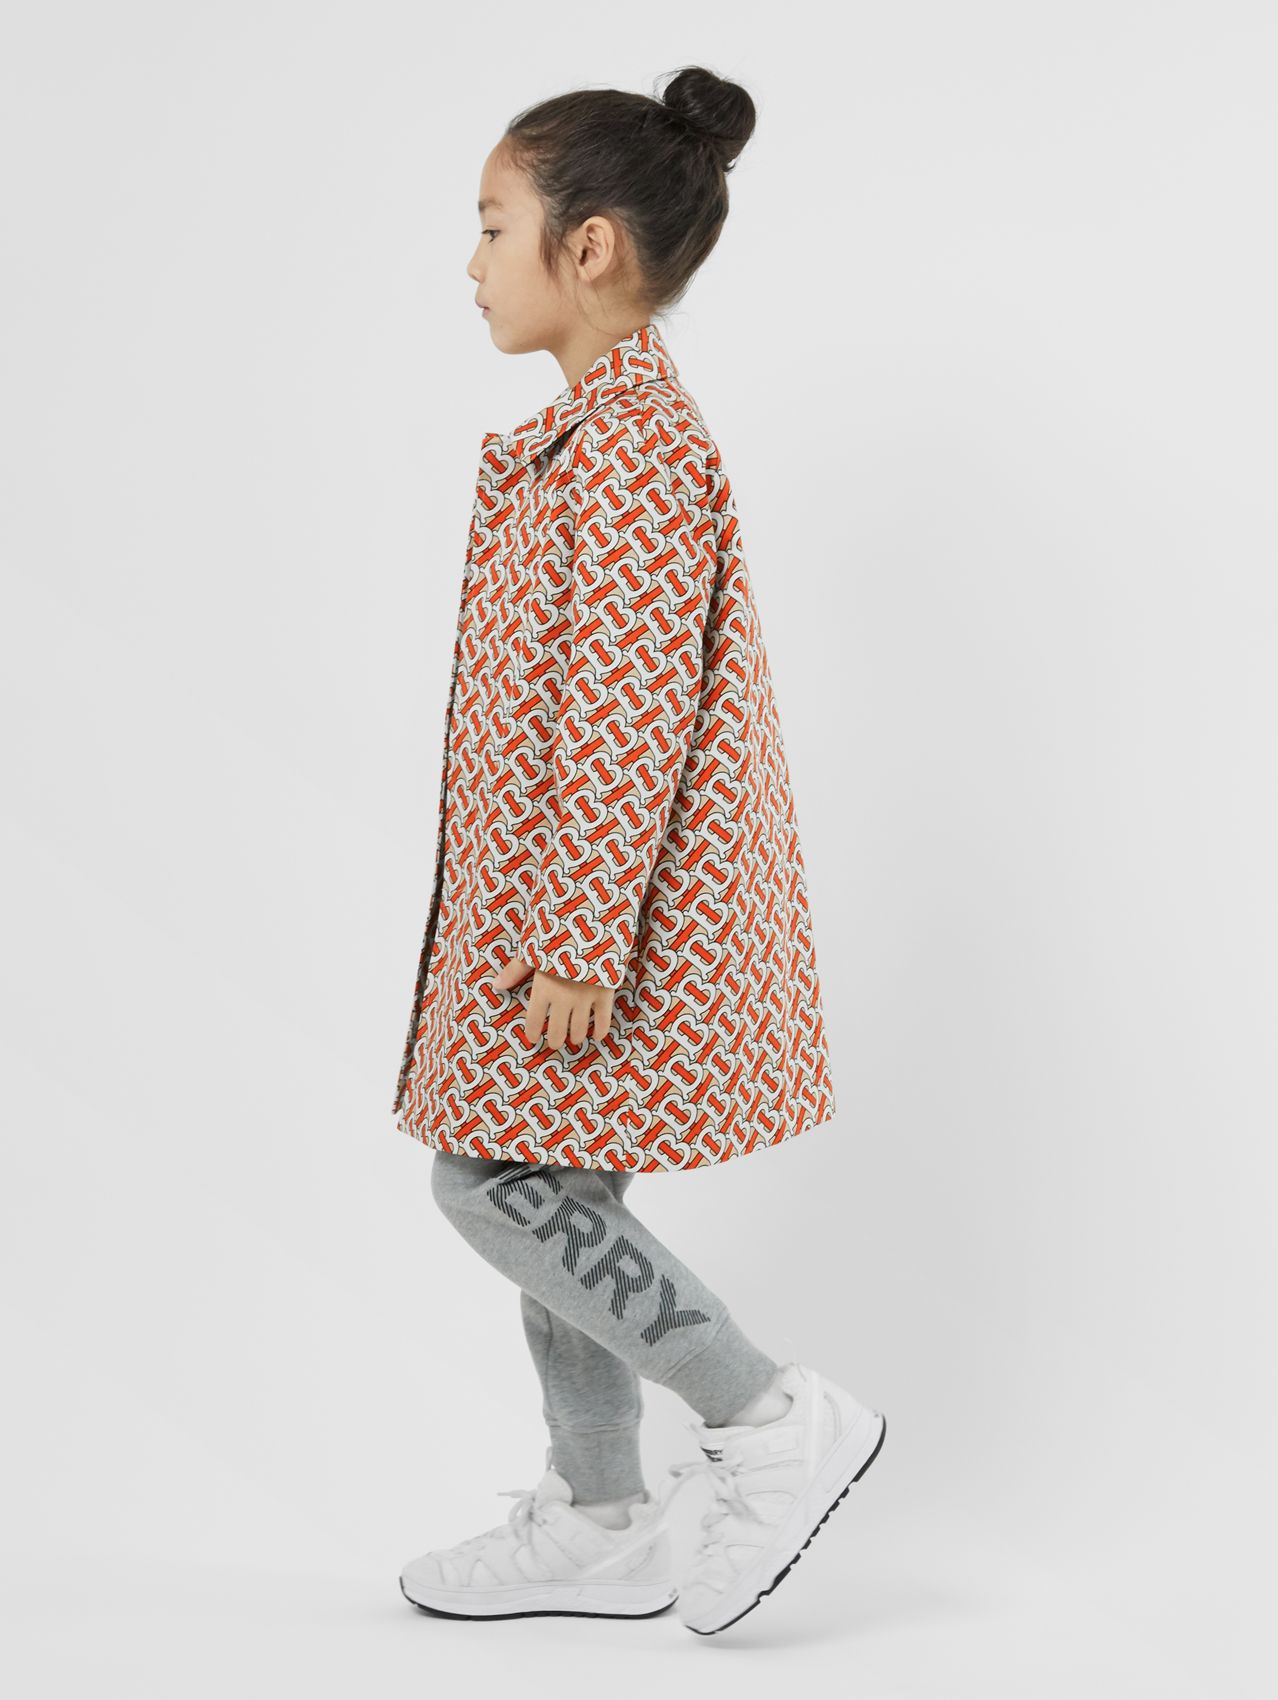 Monogram Print Cotton Car Coat (Vermilion Red)